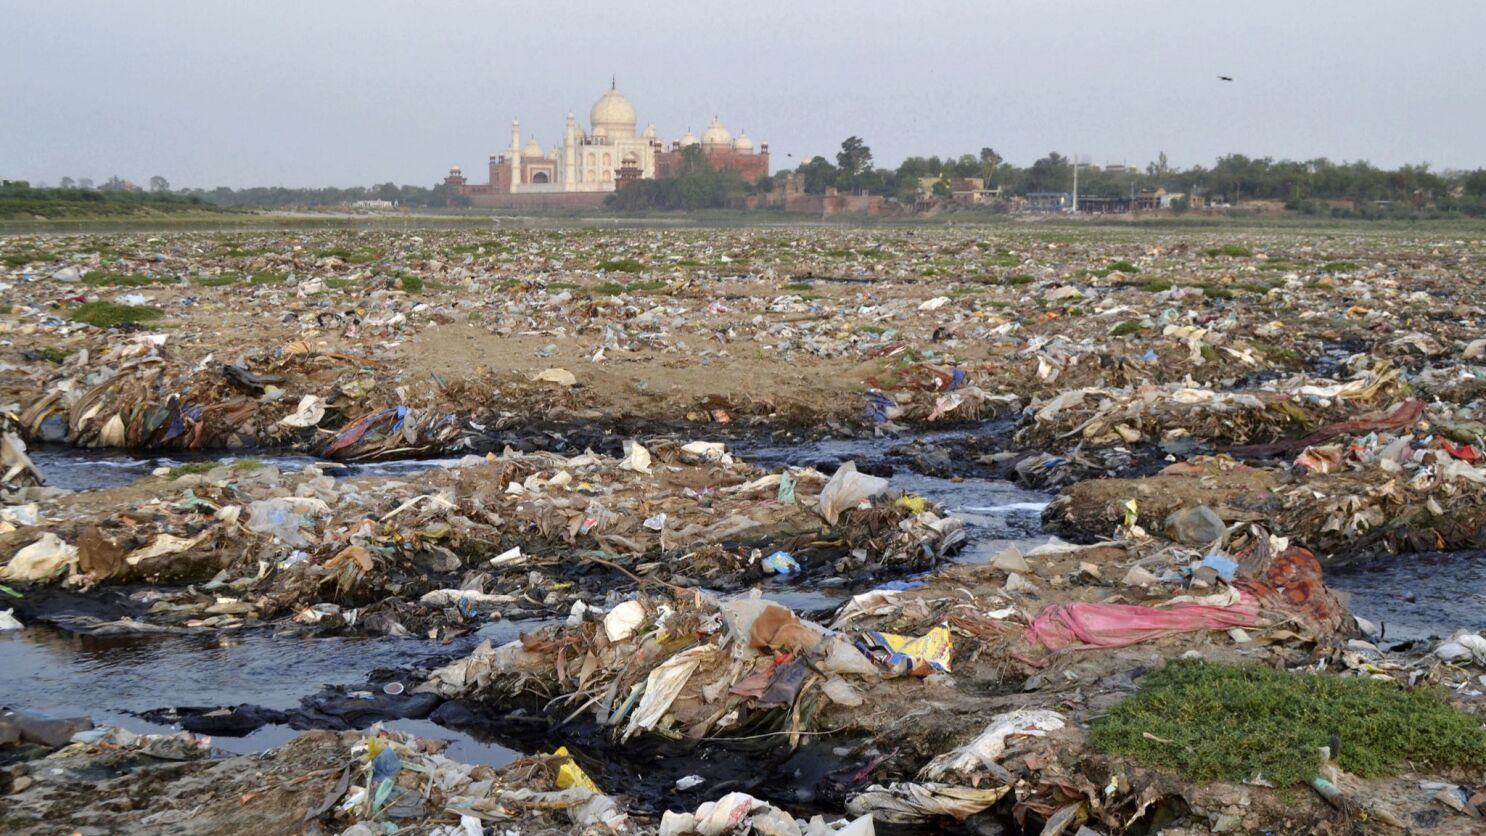 Global Development: How air pollution, a dying river and